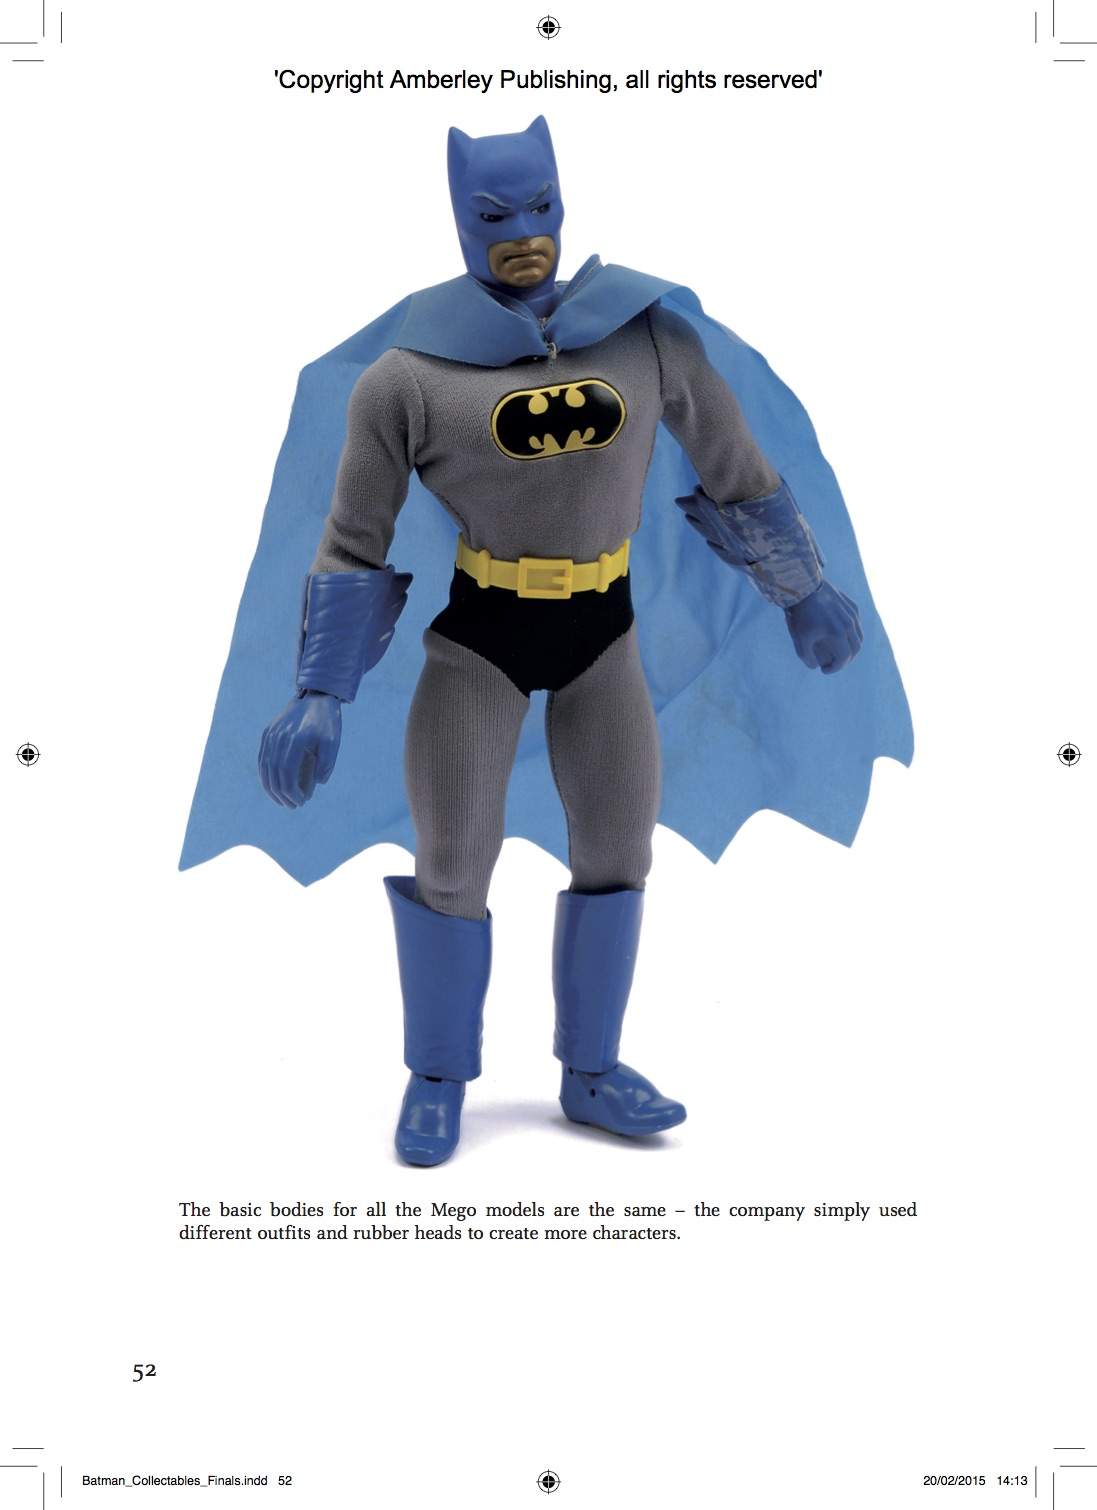 Batman Collectibles Merged File [TXT]-3